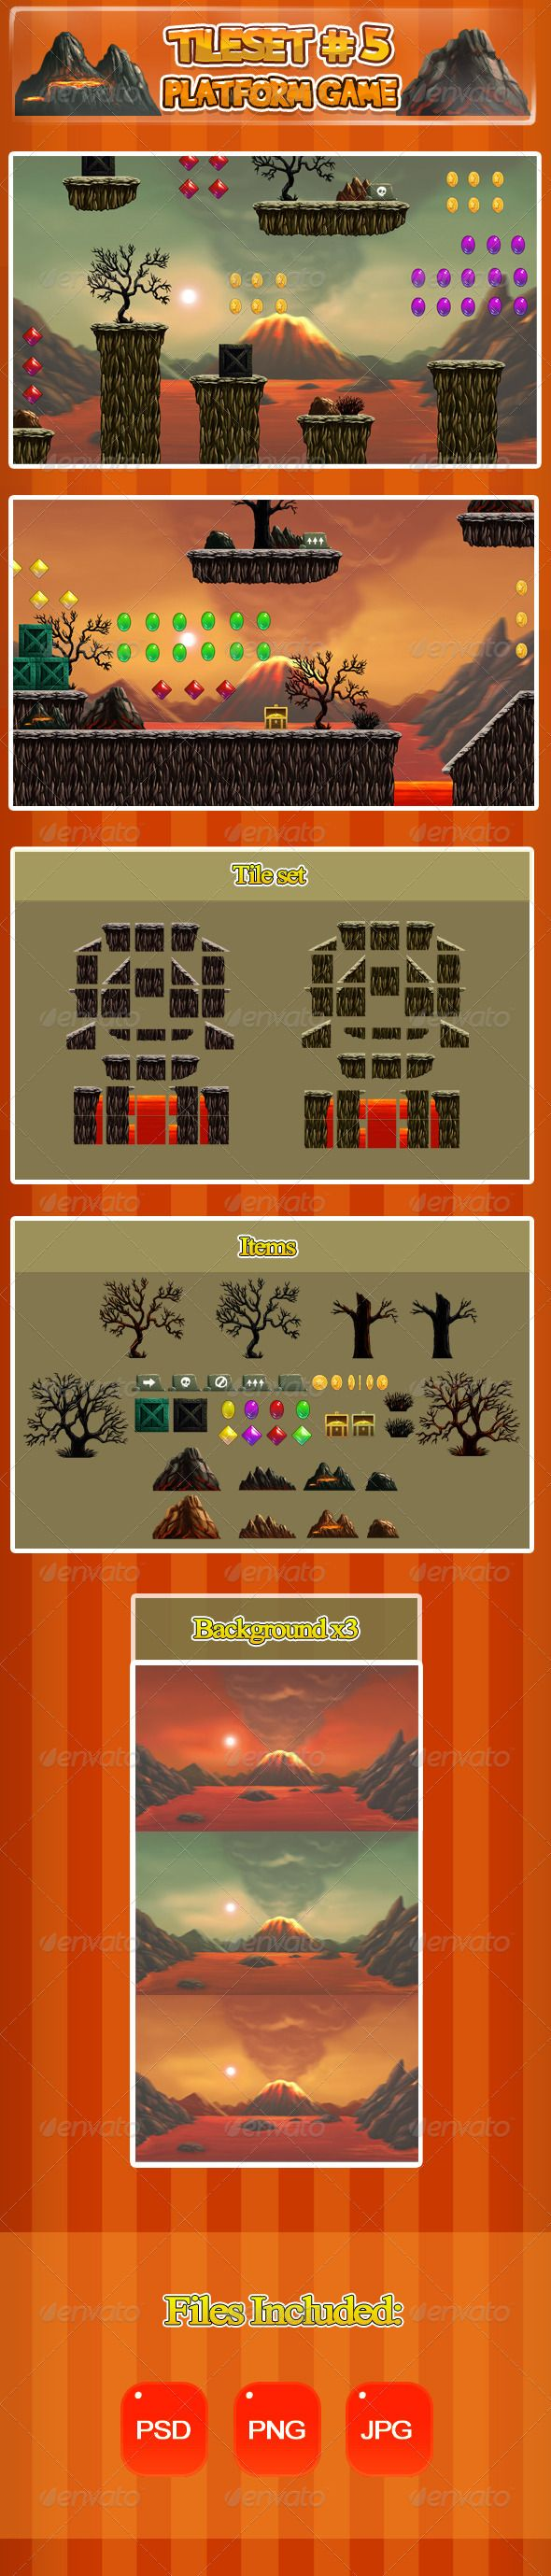 2D Tileset Platform Game 5 — Photoshop PSD #android #sprite sheet • Available here → https://graphicriver.net/item/2d-tileset-platform-game-5/6697038?ref=pxcr